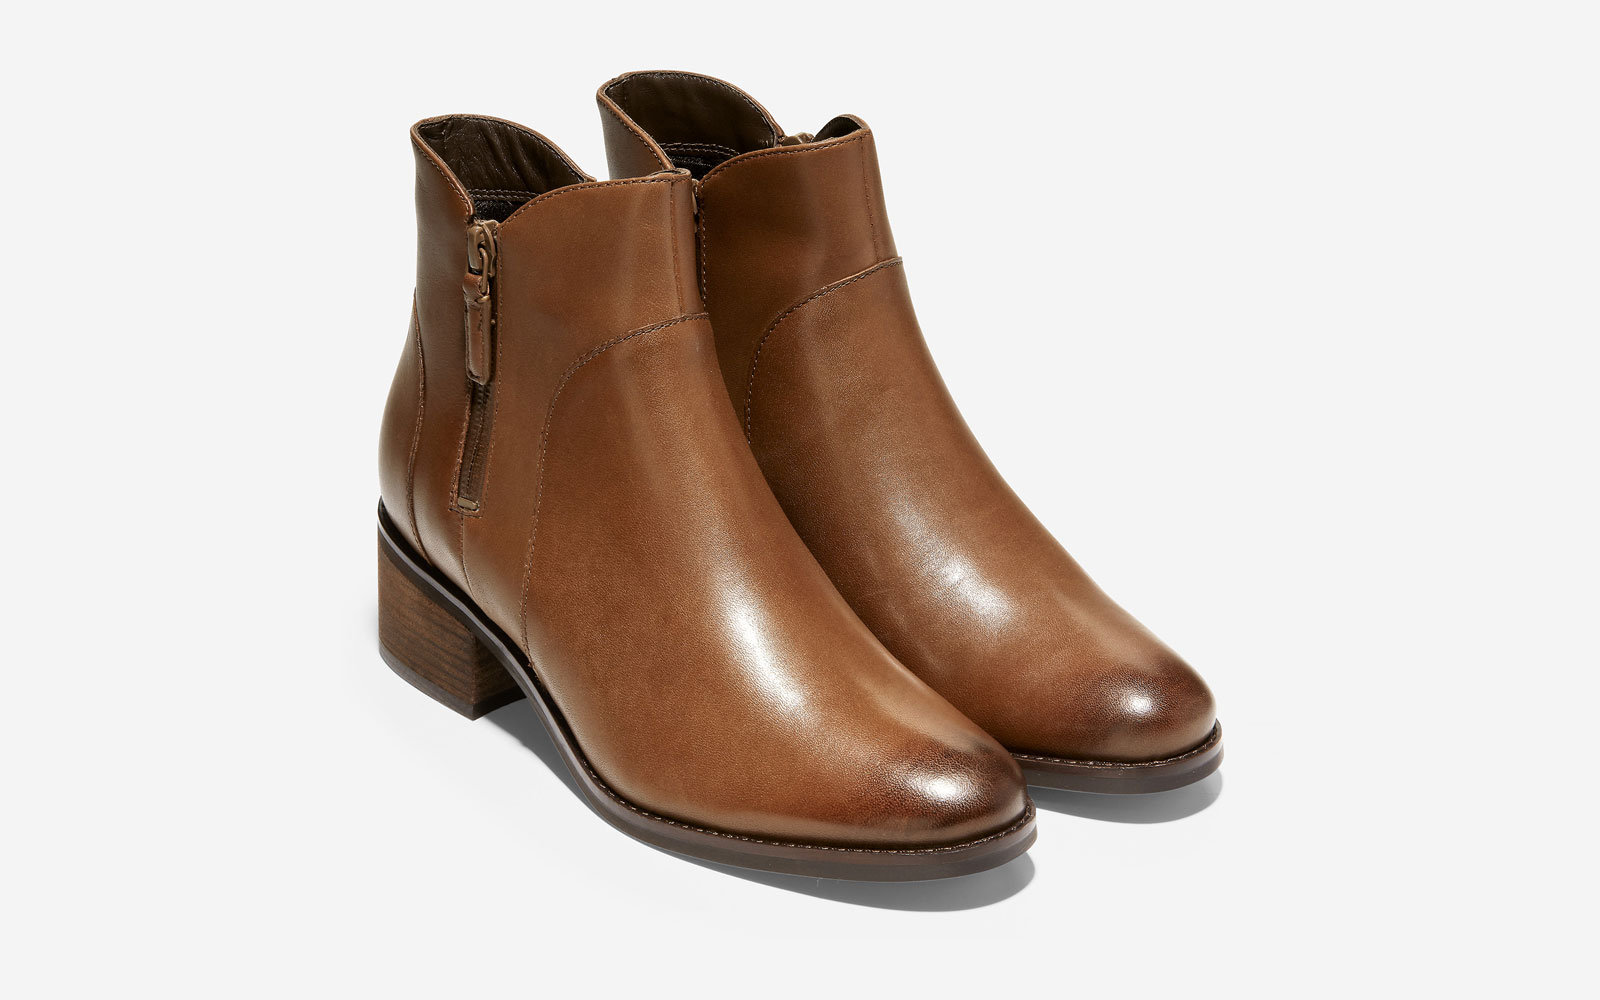 Brown/Tan Leather Ankle Boots